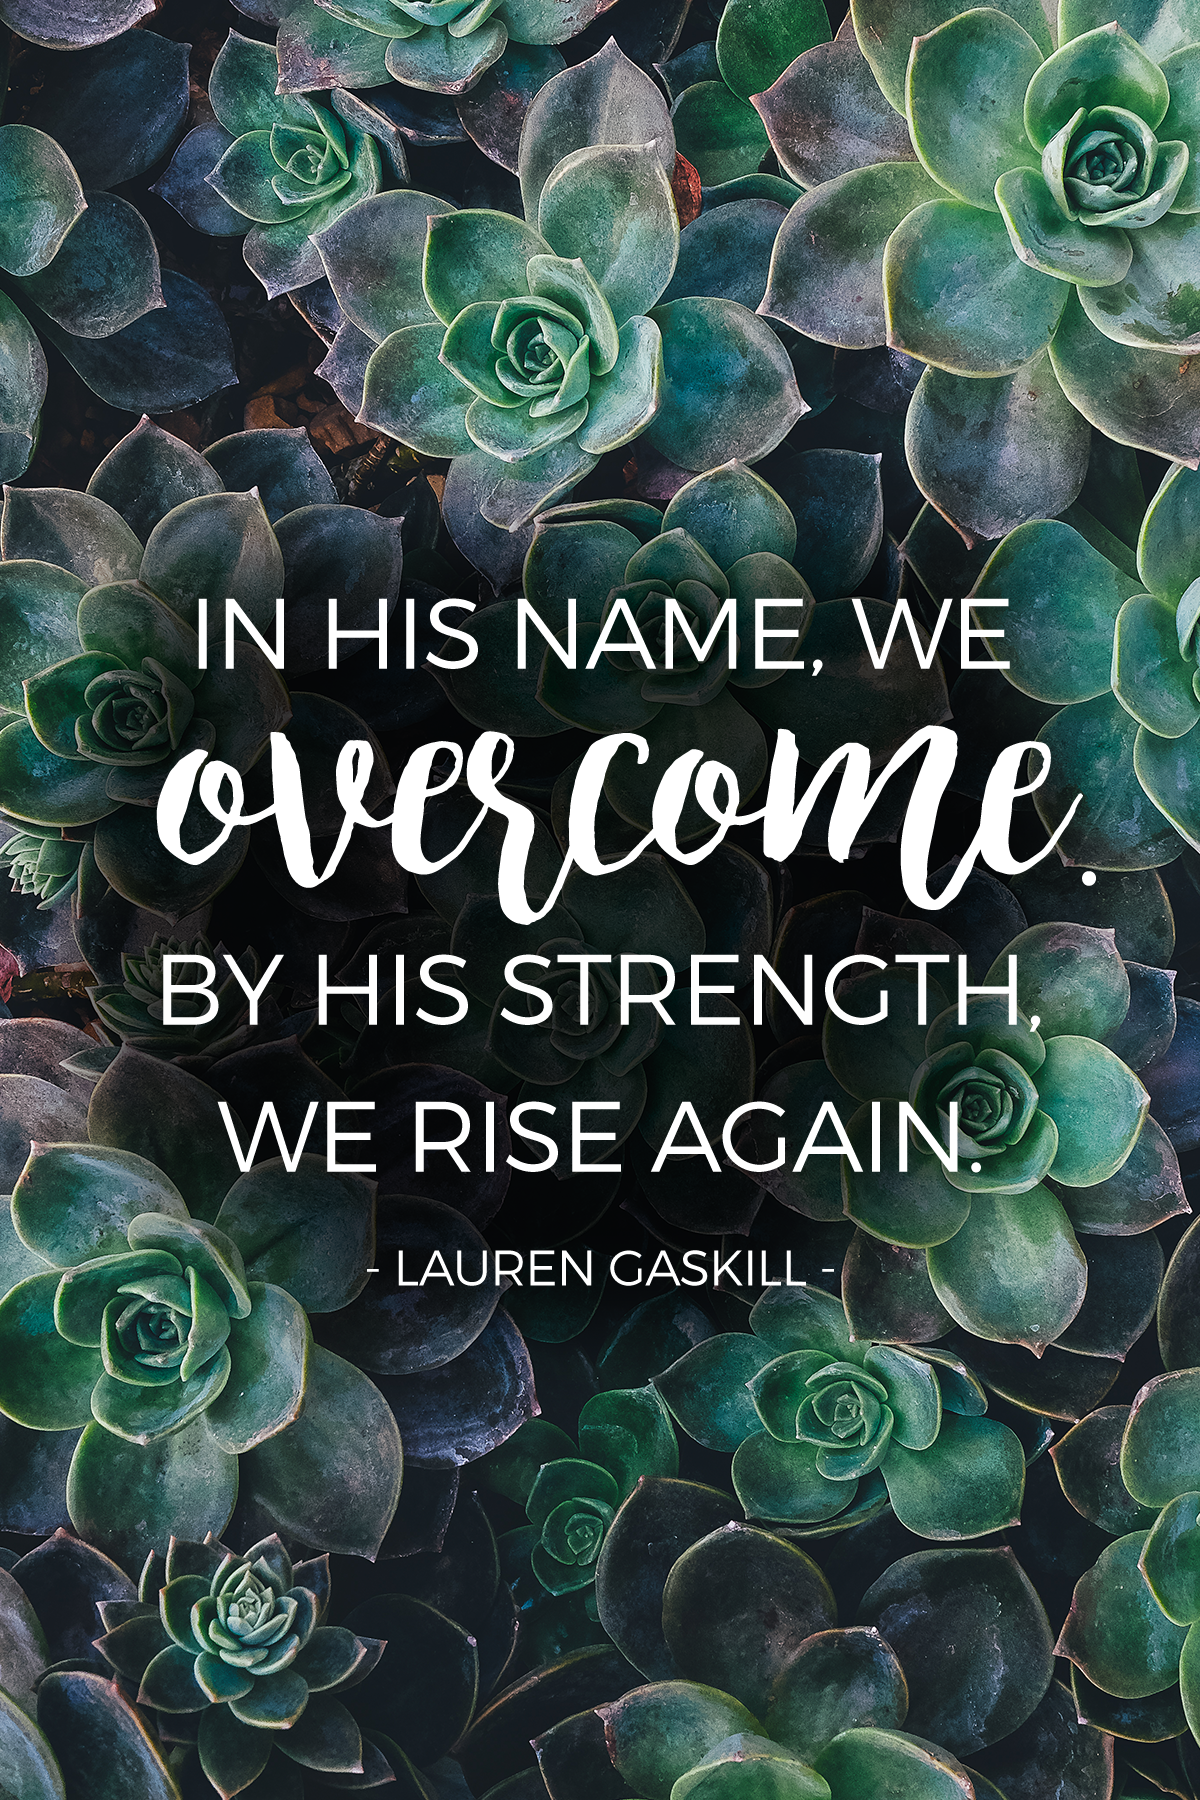 In His name, we overcome!